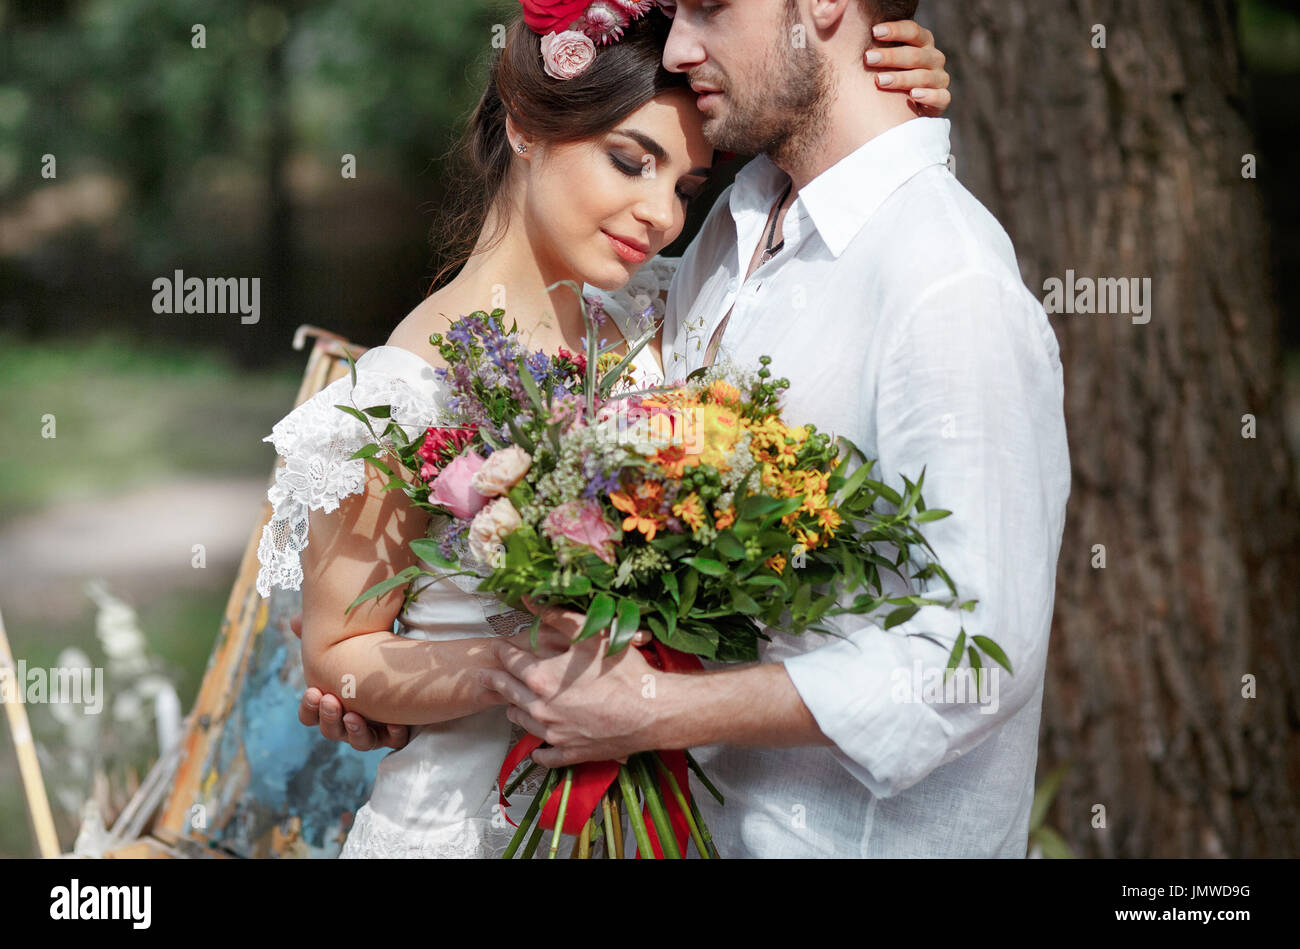 Wedding Decoration In The Style Of Boho Floral Arrangement Stock